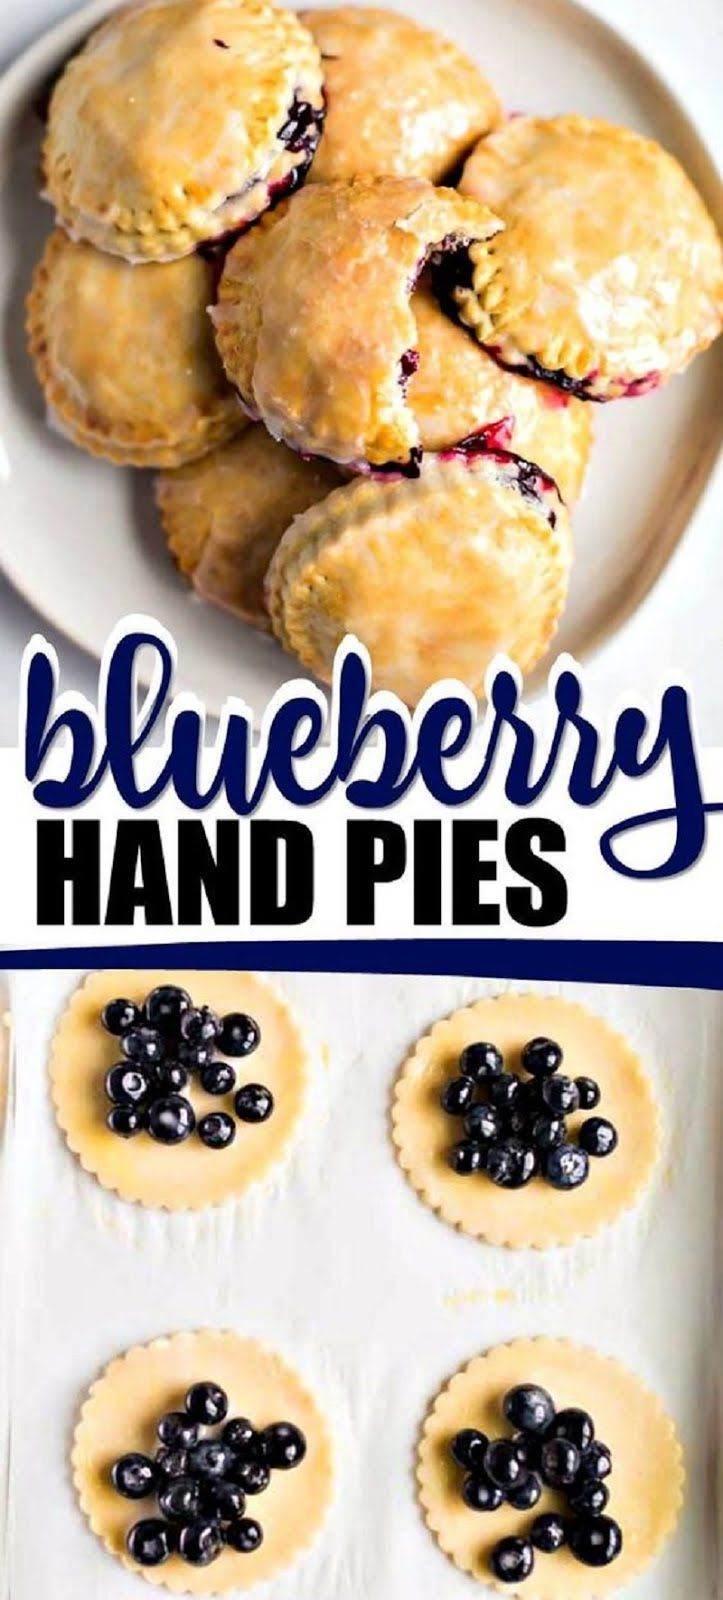 Blueberry Hand Pies  #easypierecipes